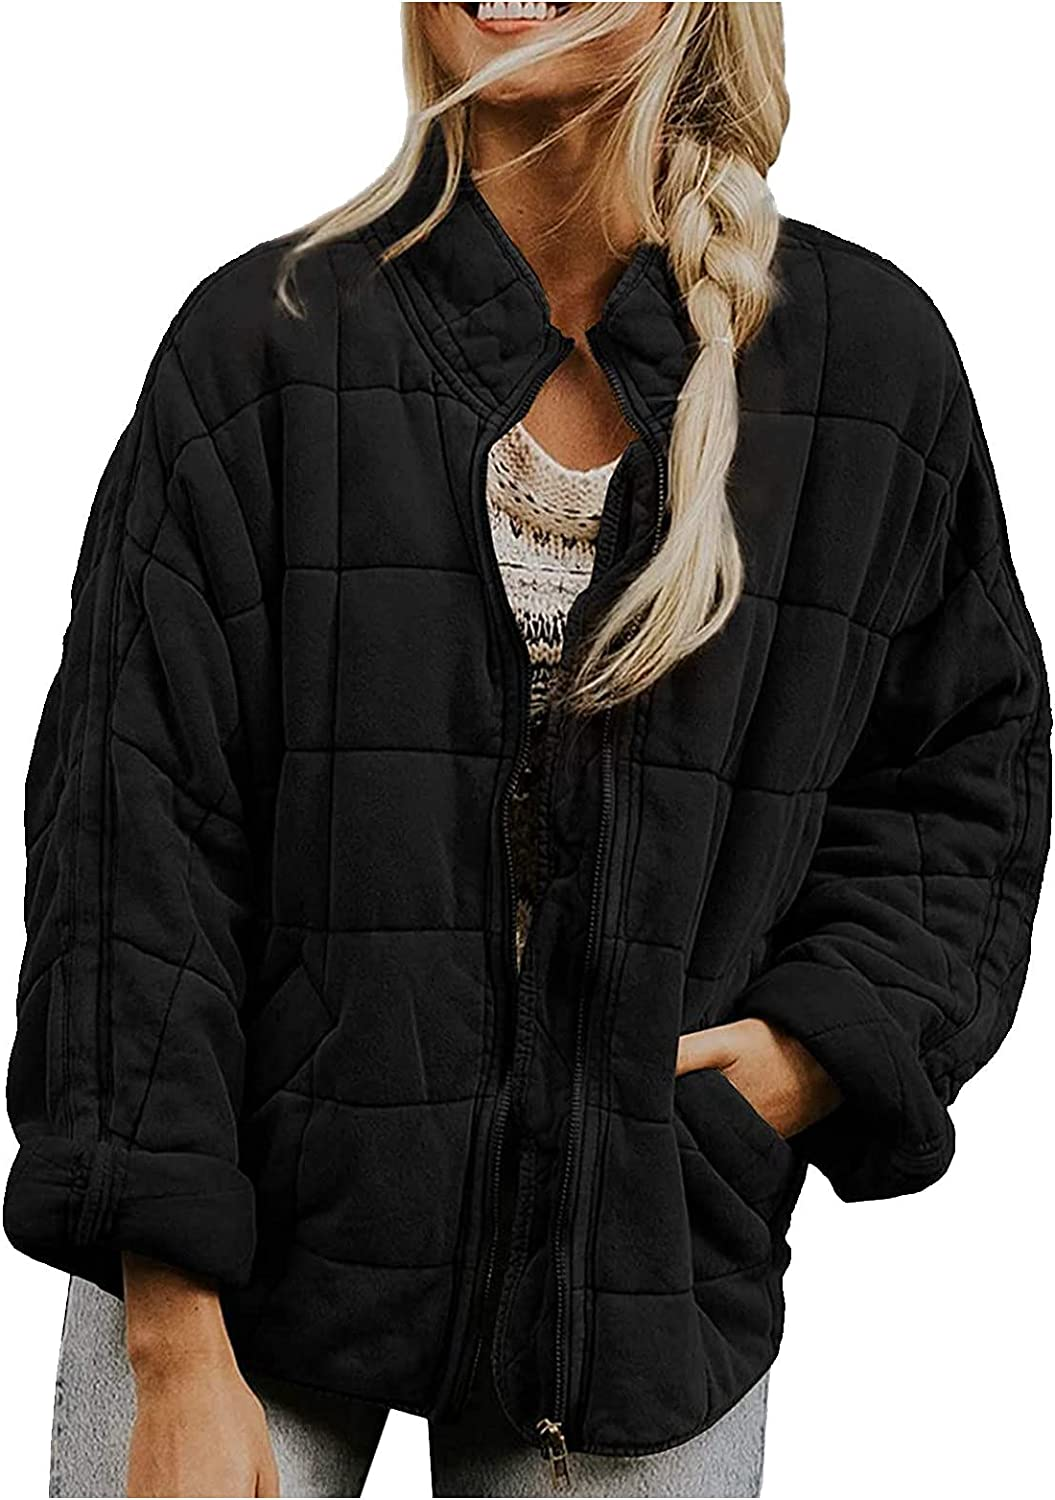 Womens Lightweight Casual Jackets Quilted Zip Up Long Sleeve Stand Neck Warm Winter Outwears Coat